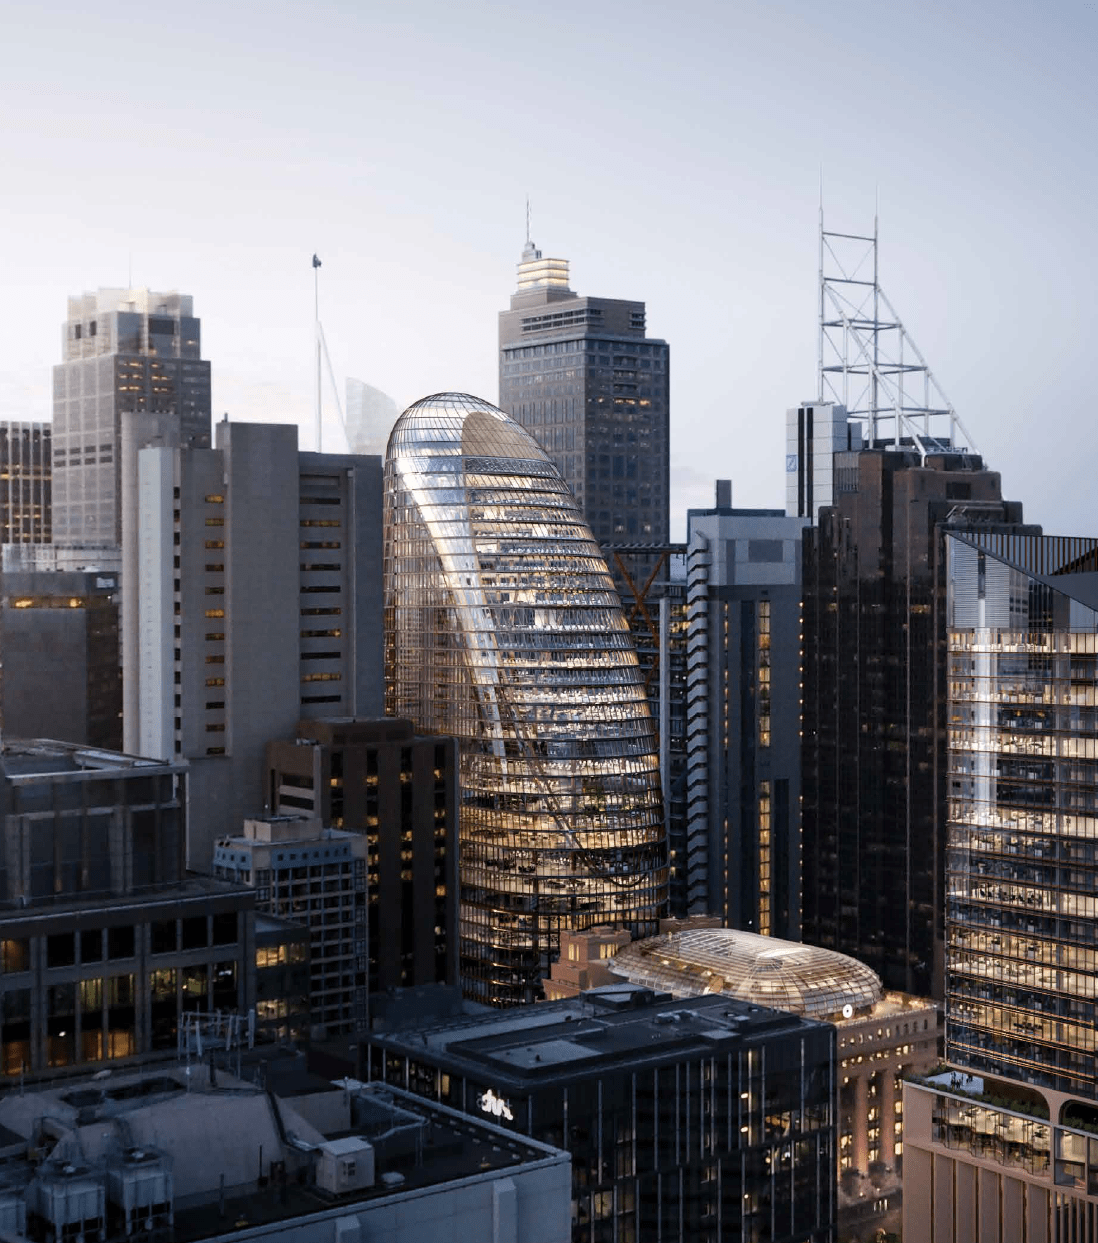 Headline image - Martin Place proposed development - Source Metro Martin Place